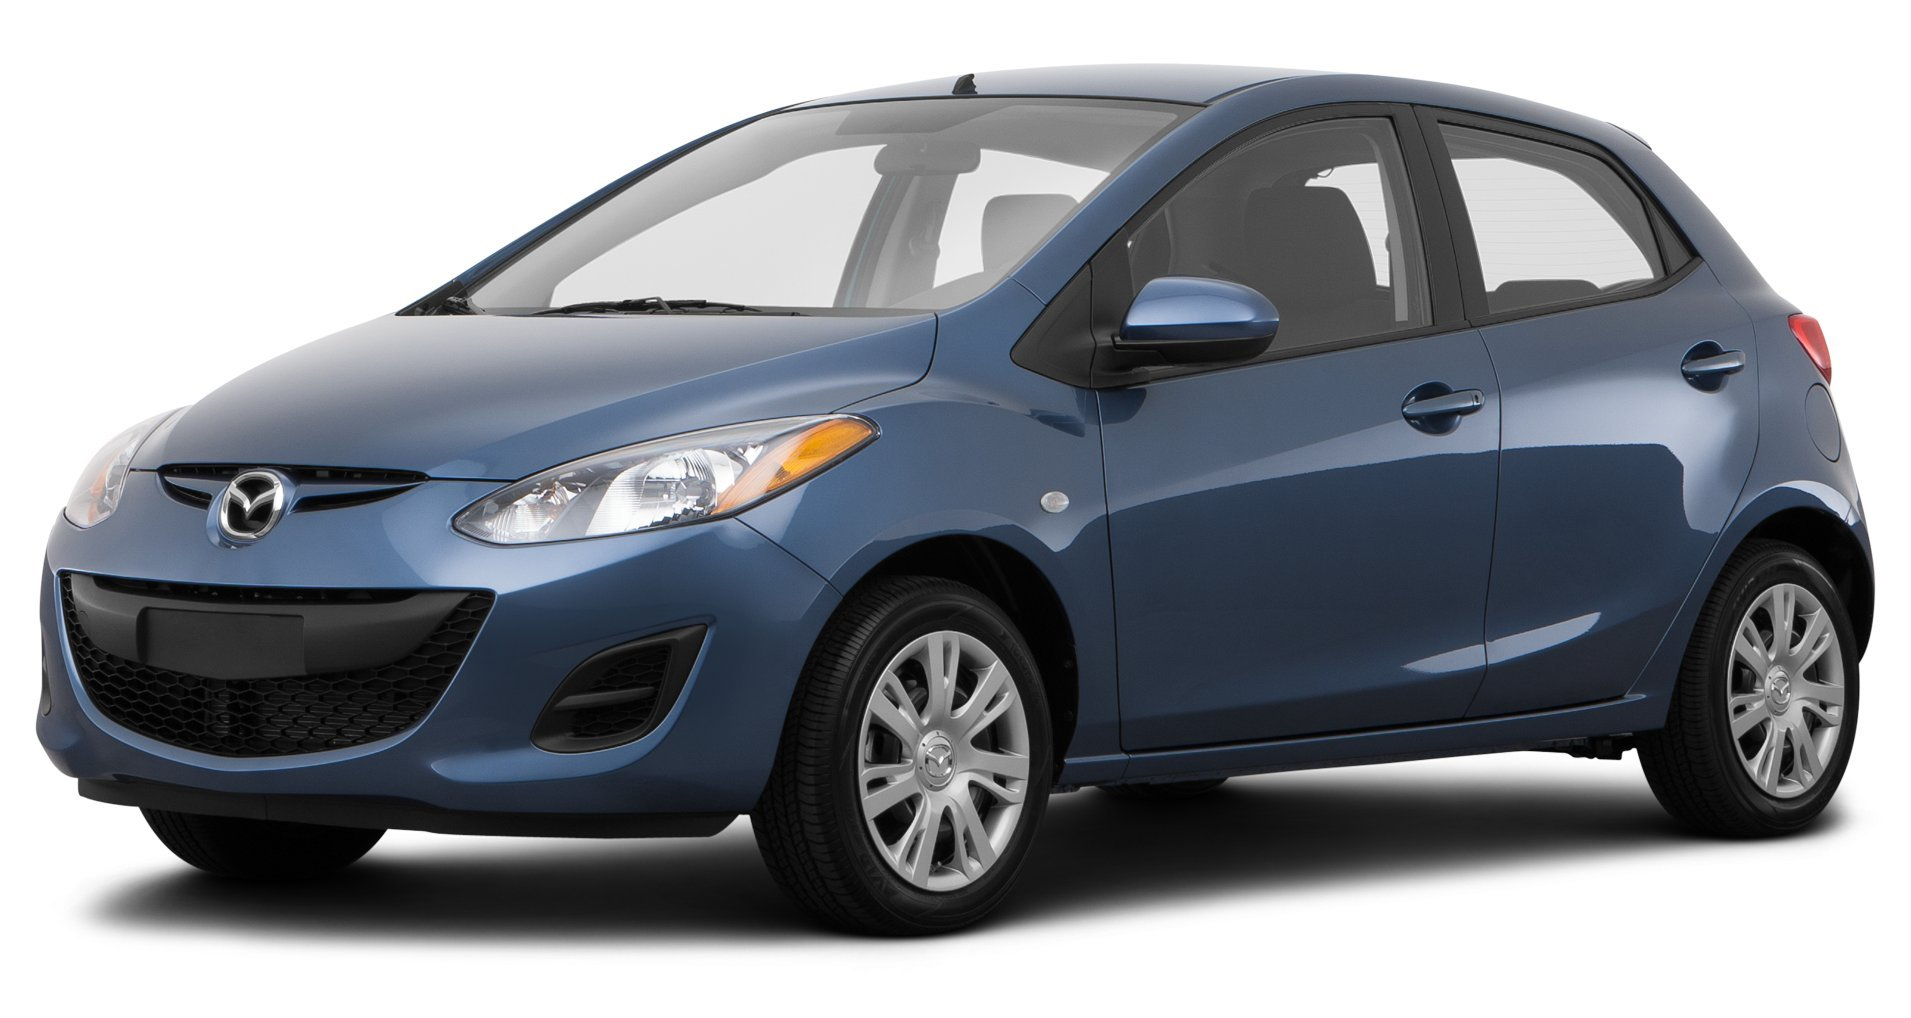 ... 2014 Mazda 2 Sport, 4-Door Hatchback Automatic Transmission ...